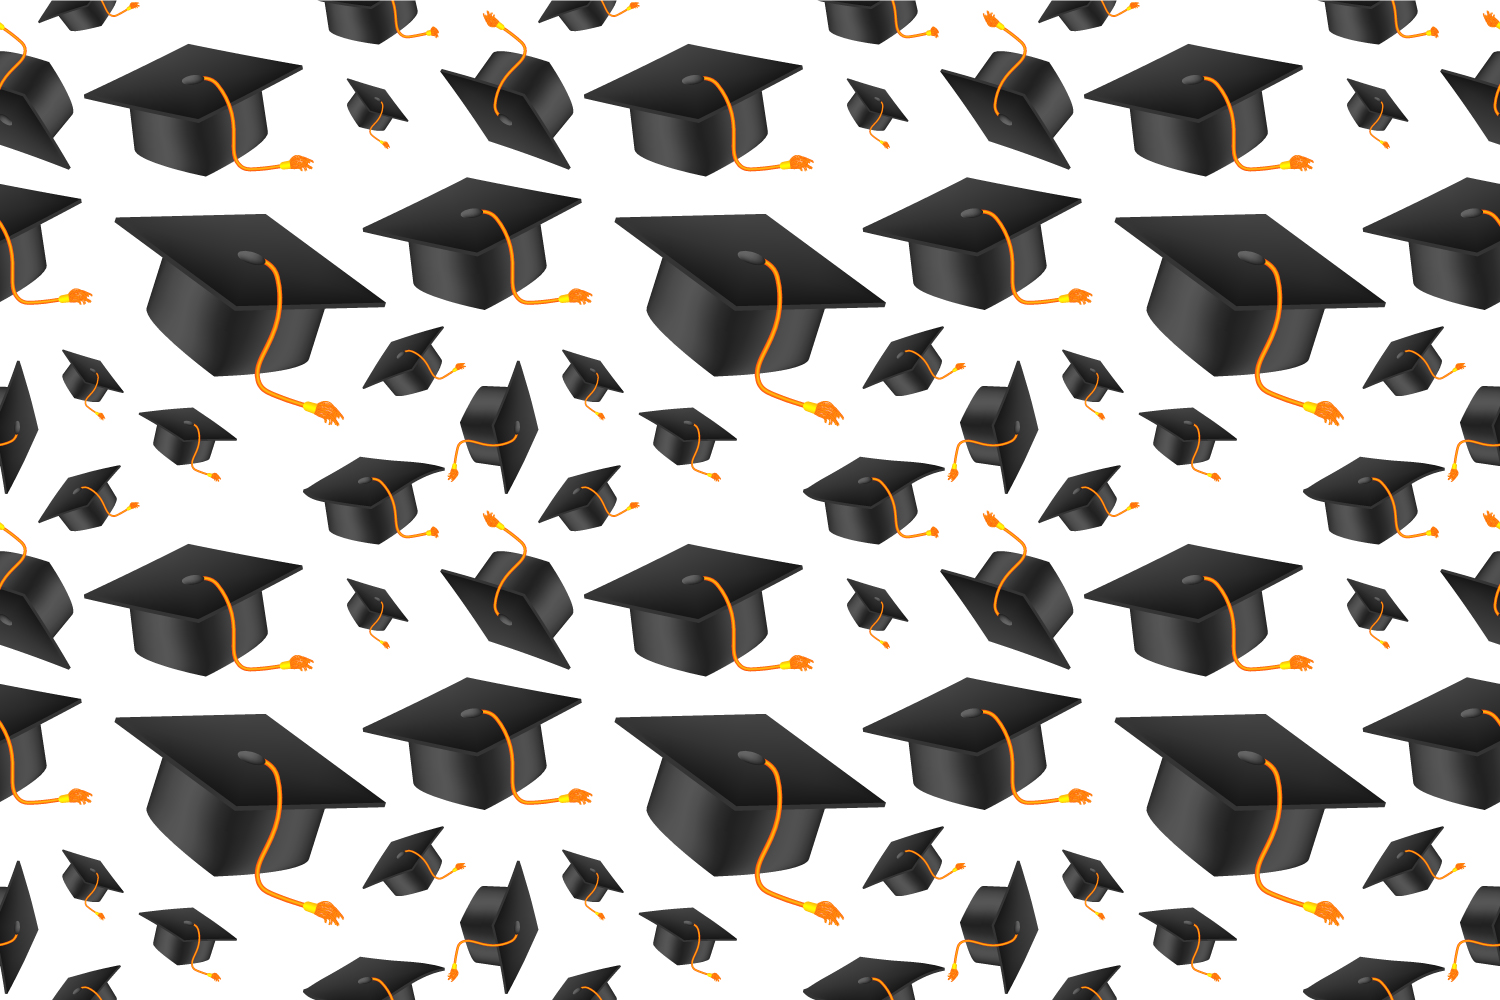 Download Free Graduation Cap Seamless Pattern Graphic By Manuchi Creative for Cricut Explore, Silhouette and other cutting machines.